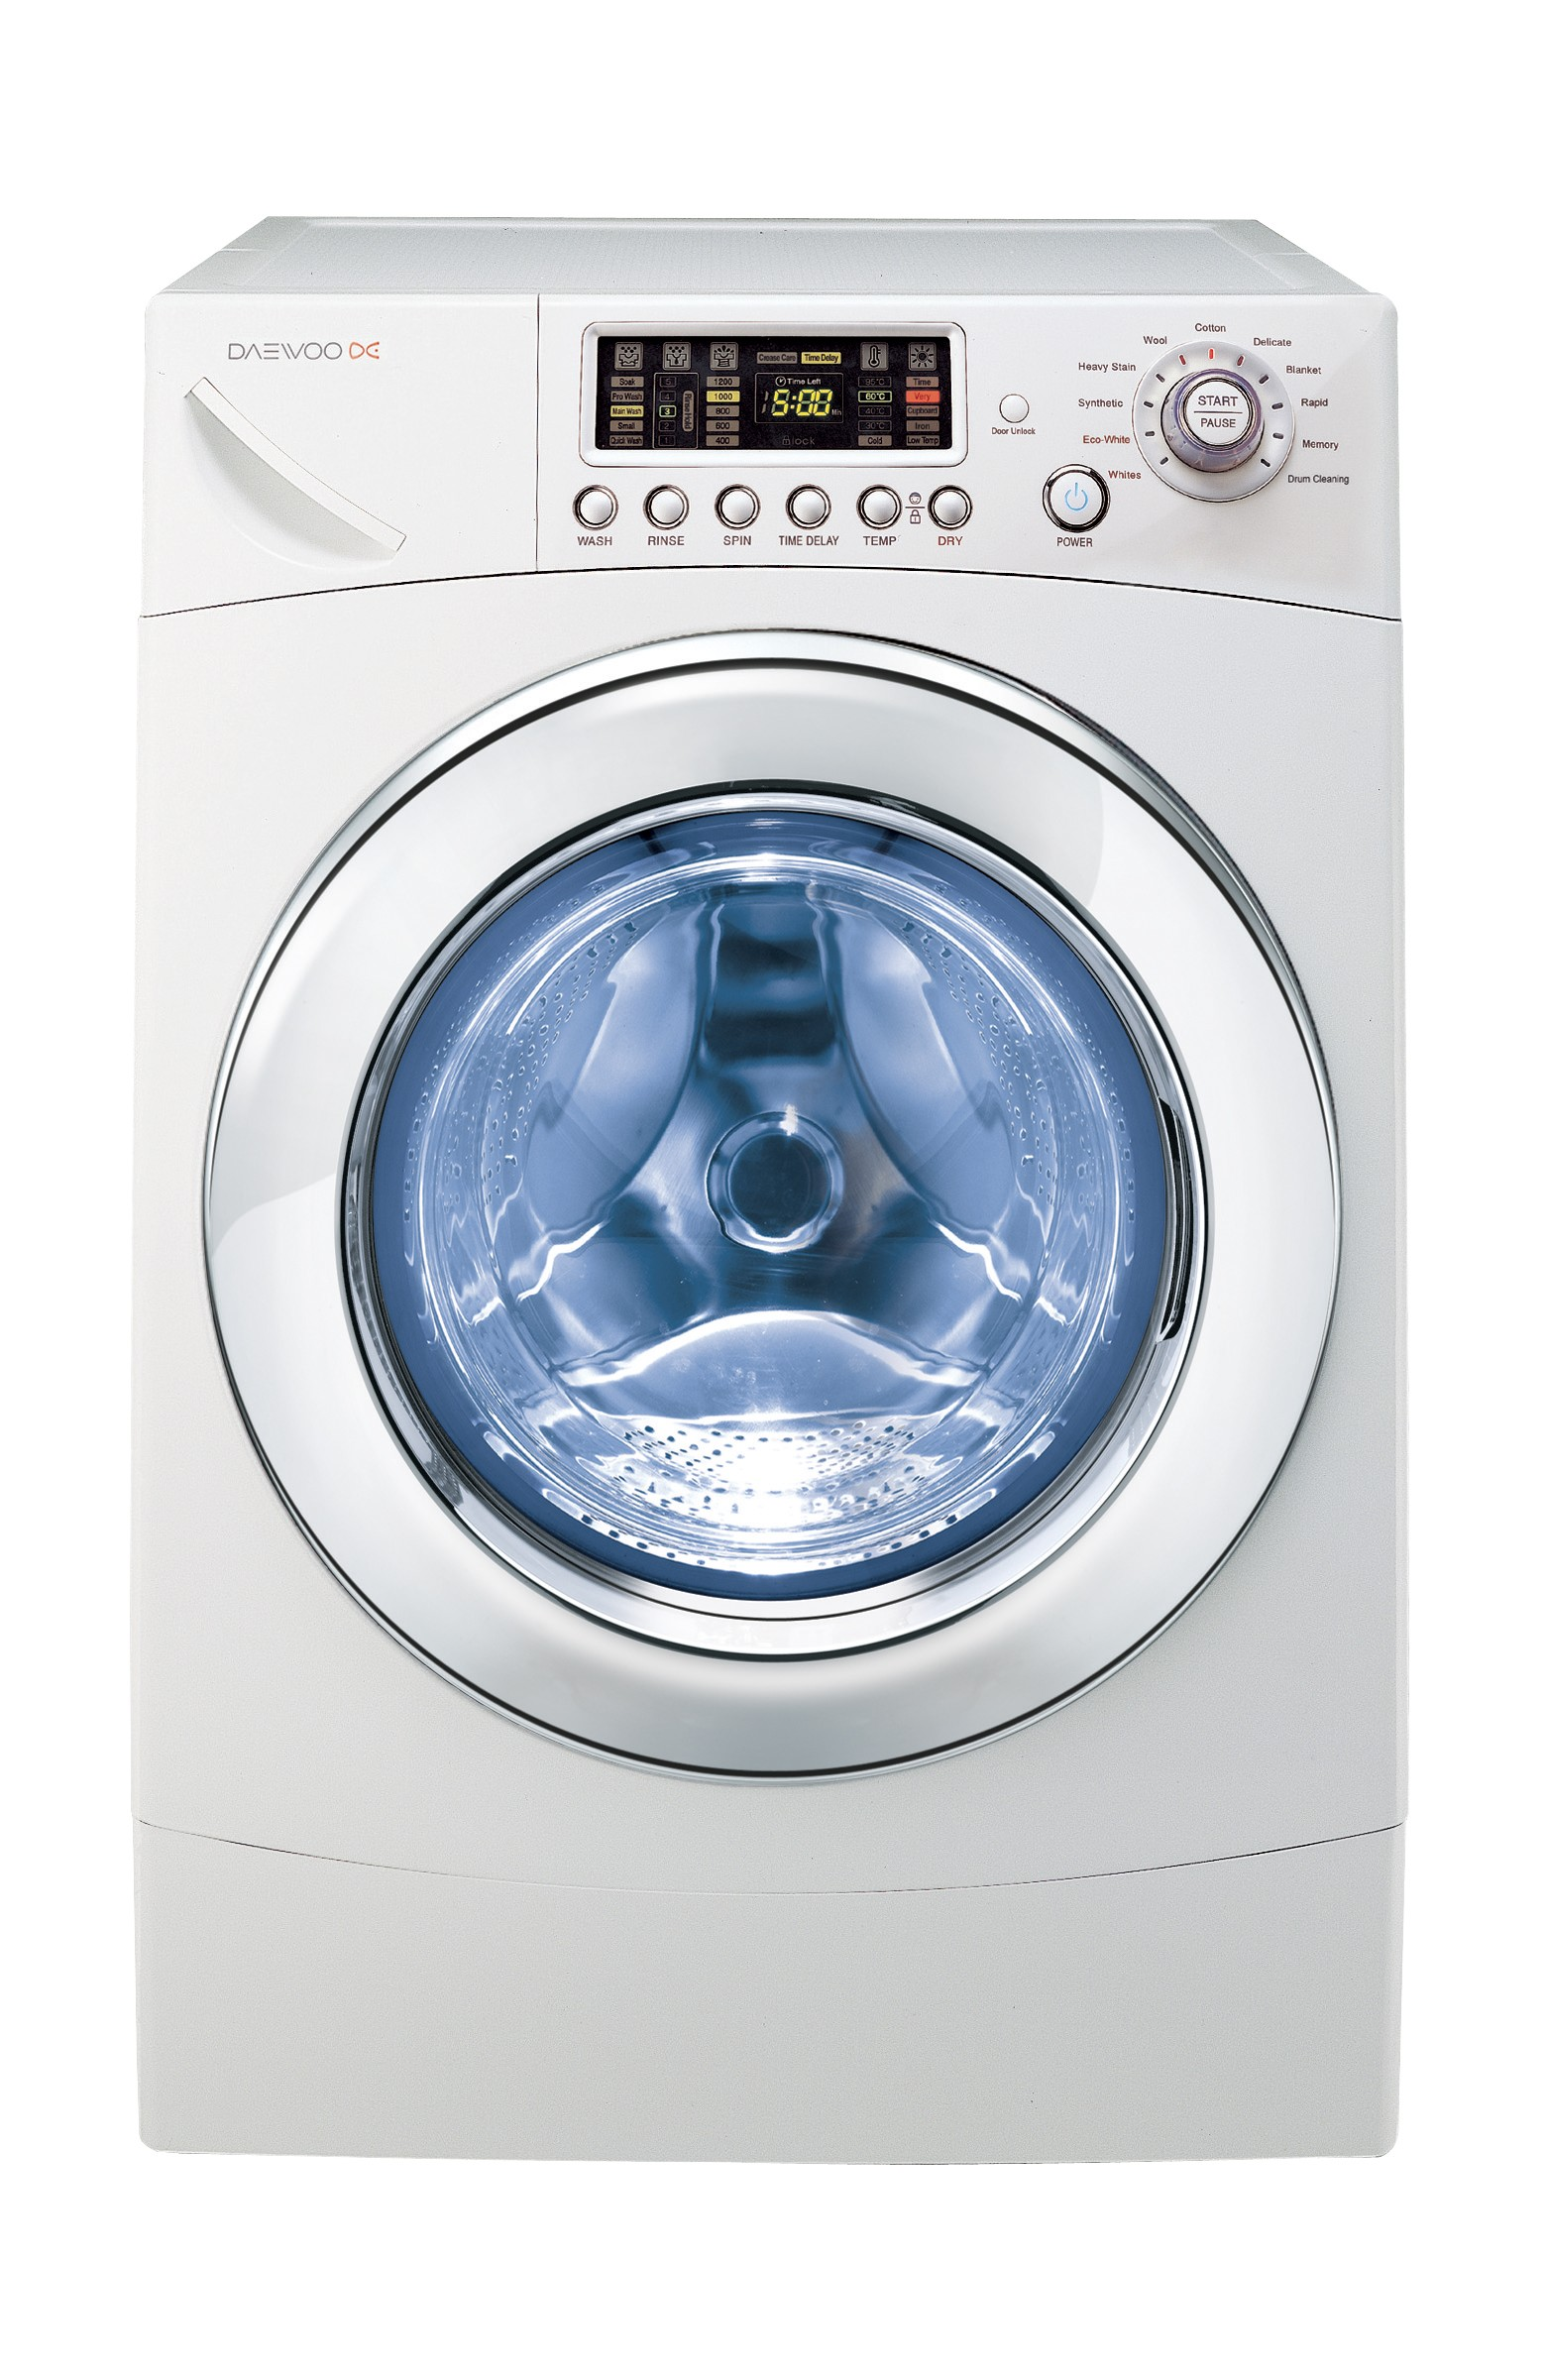 Daewoo 11Kg/6.5Kg Front Load Washer Dryer - White DWC-ED1212   Xcite